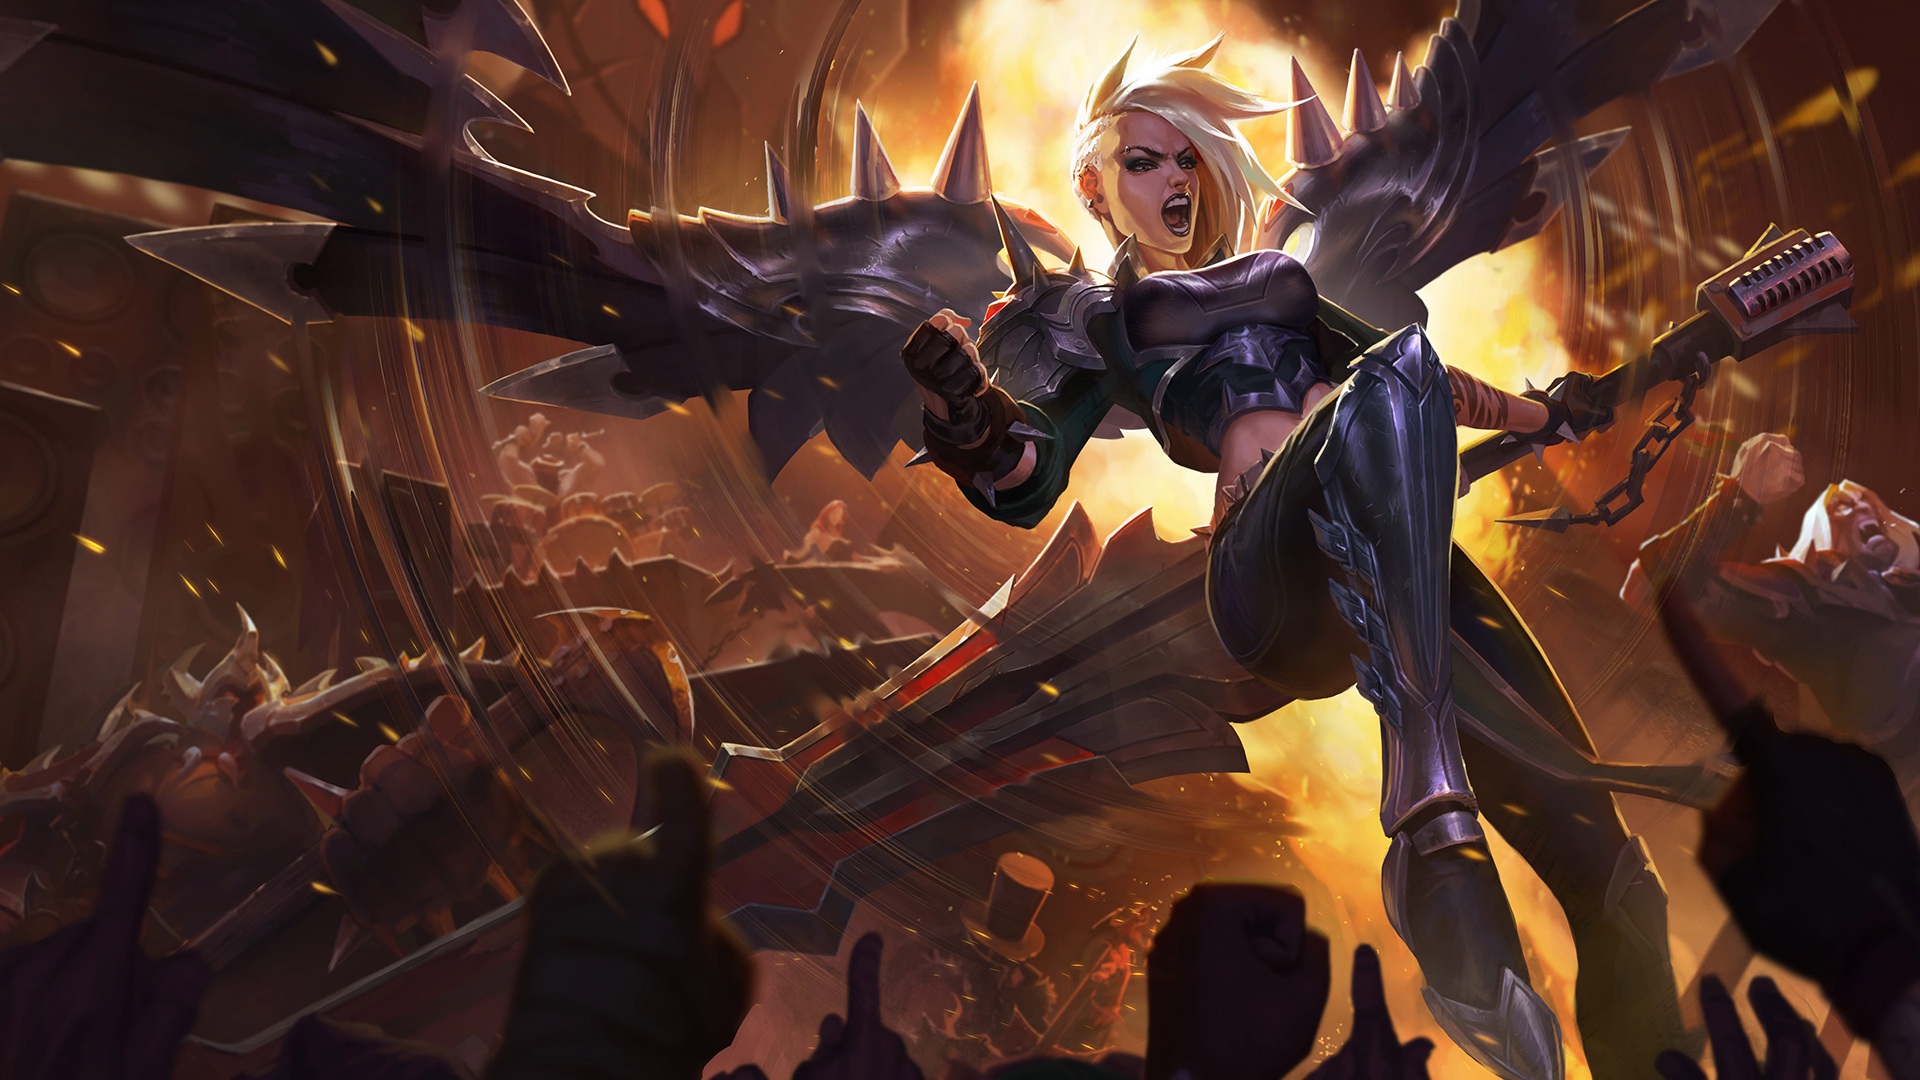 LoL skins: The rarest skins you can get in League of Legends